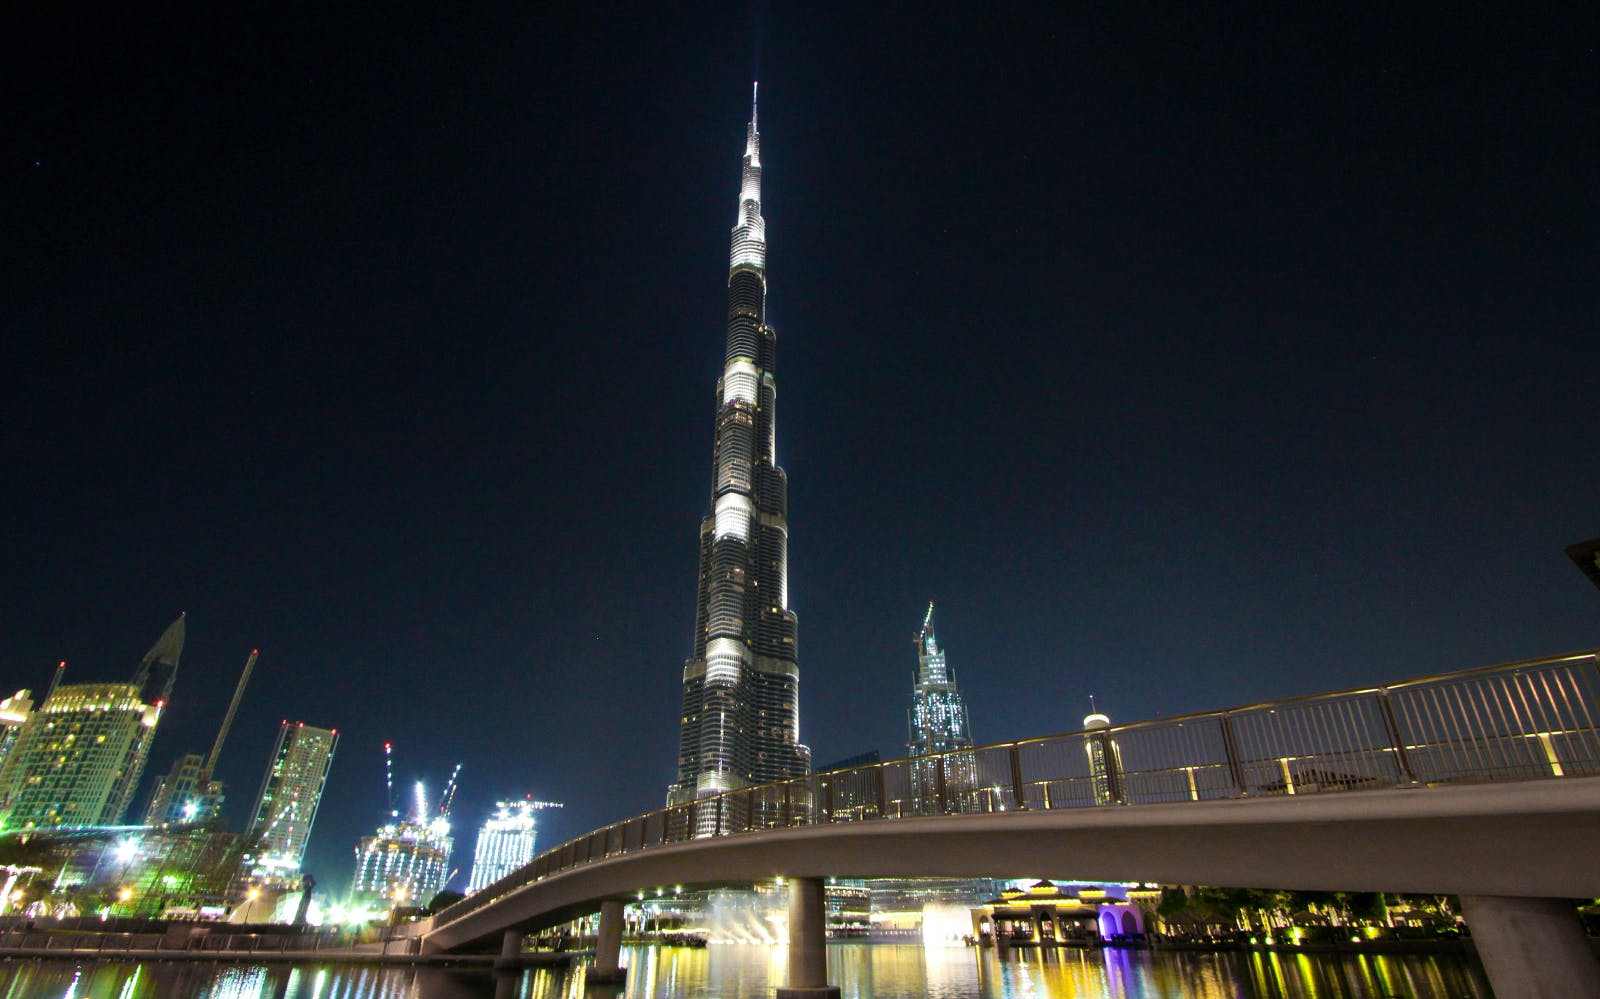 burj khalifa + modesh world-1